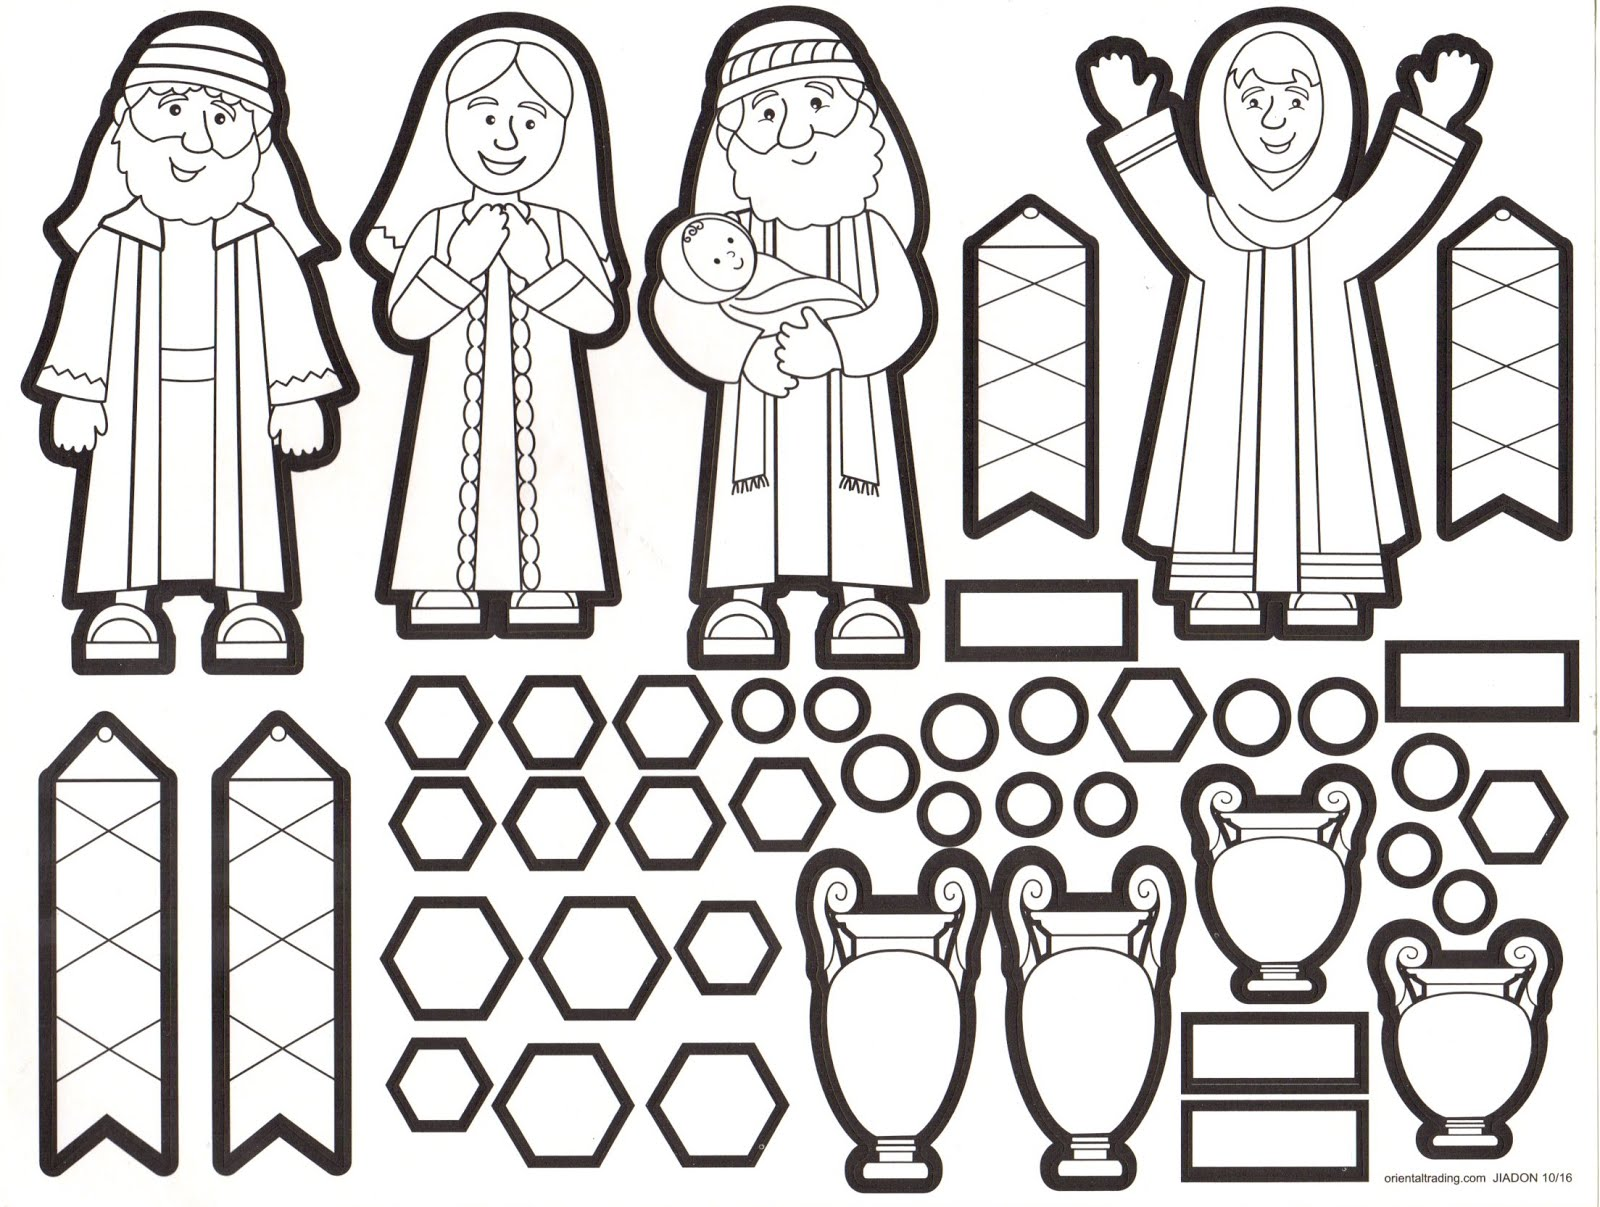 Petersham Bible Book & Tract Depot: Colour Your Own Simeon